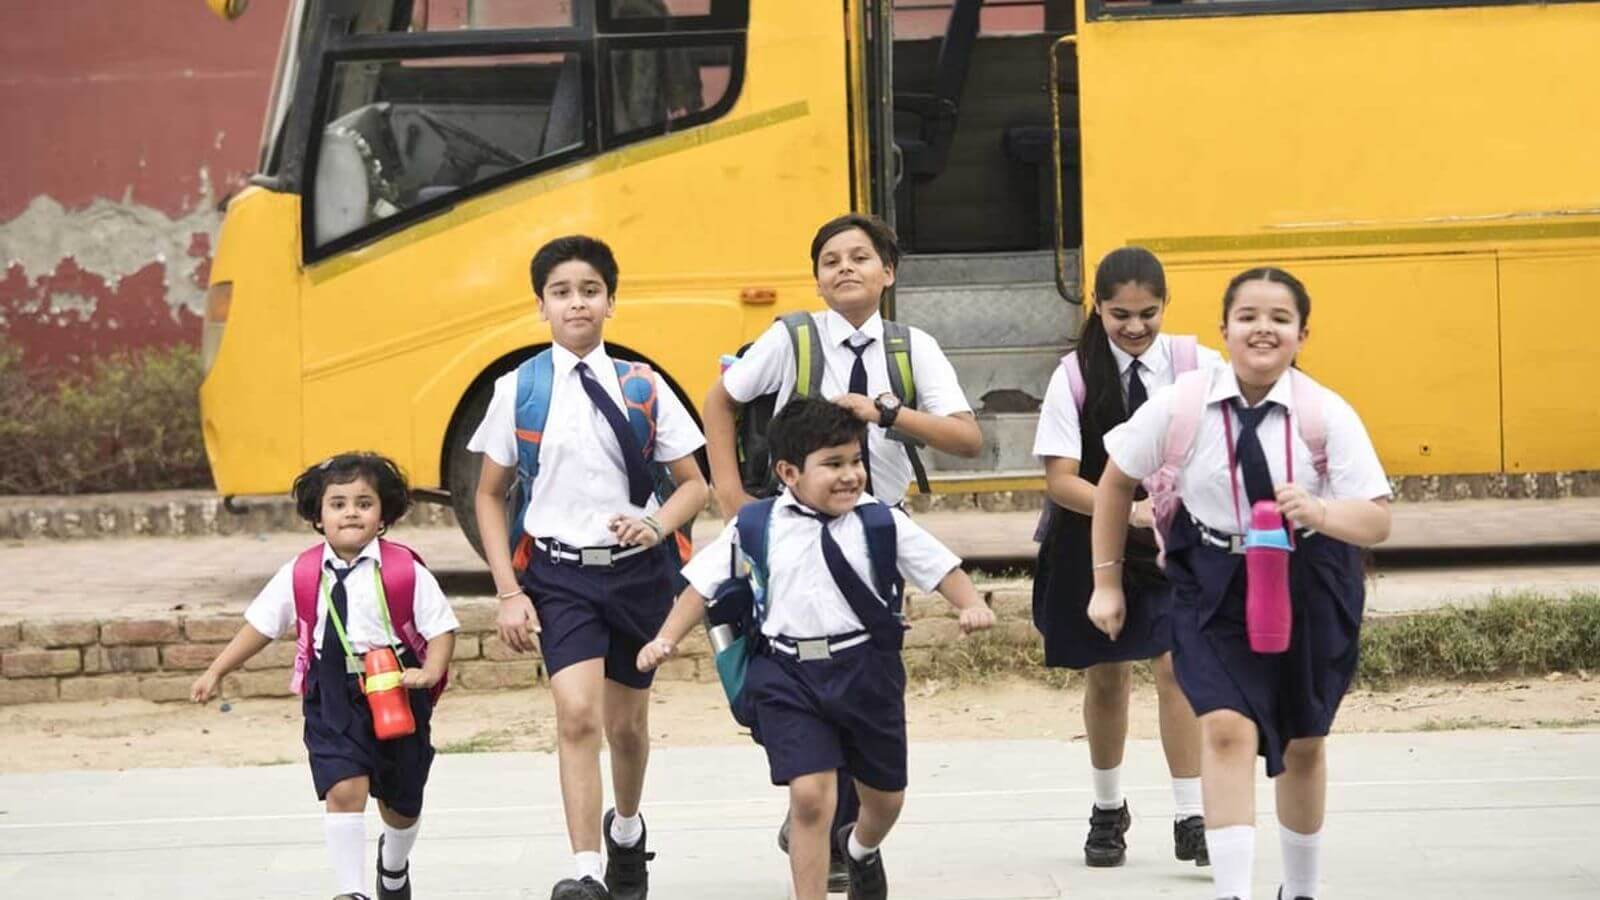 Schools in Bihar to reopen for classes 1 to 5 from March 1